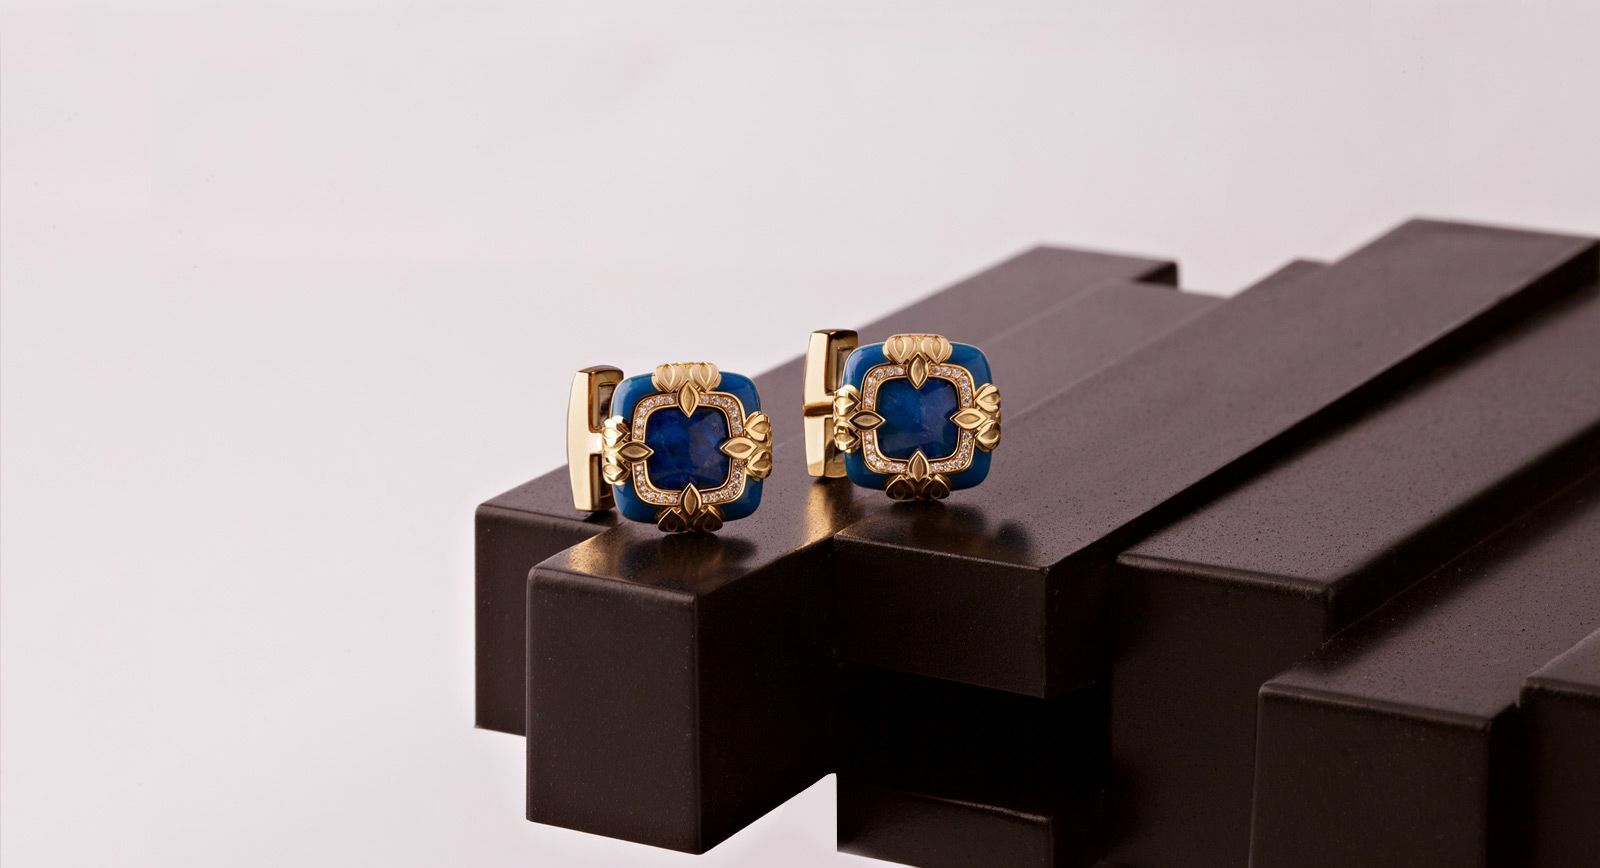 Ichien cufflinks in lapis lazuli with yellow gold